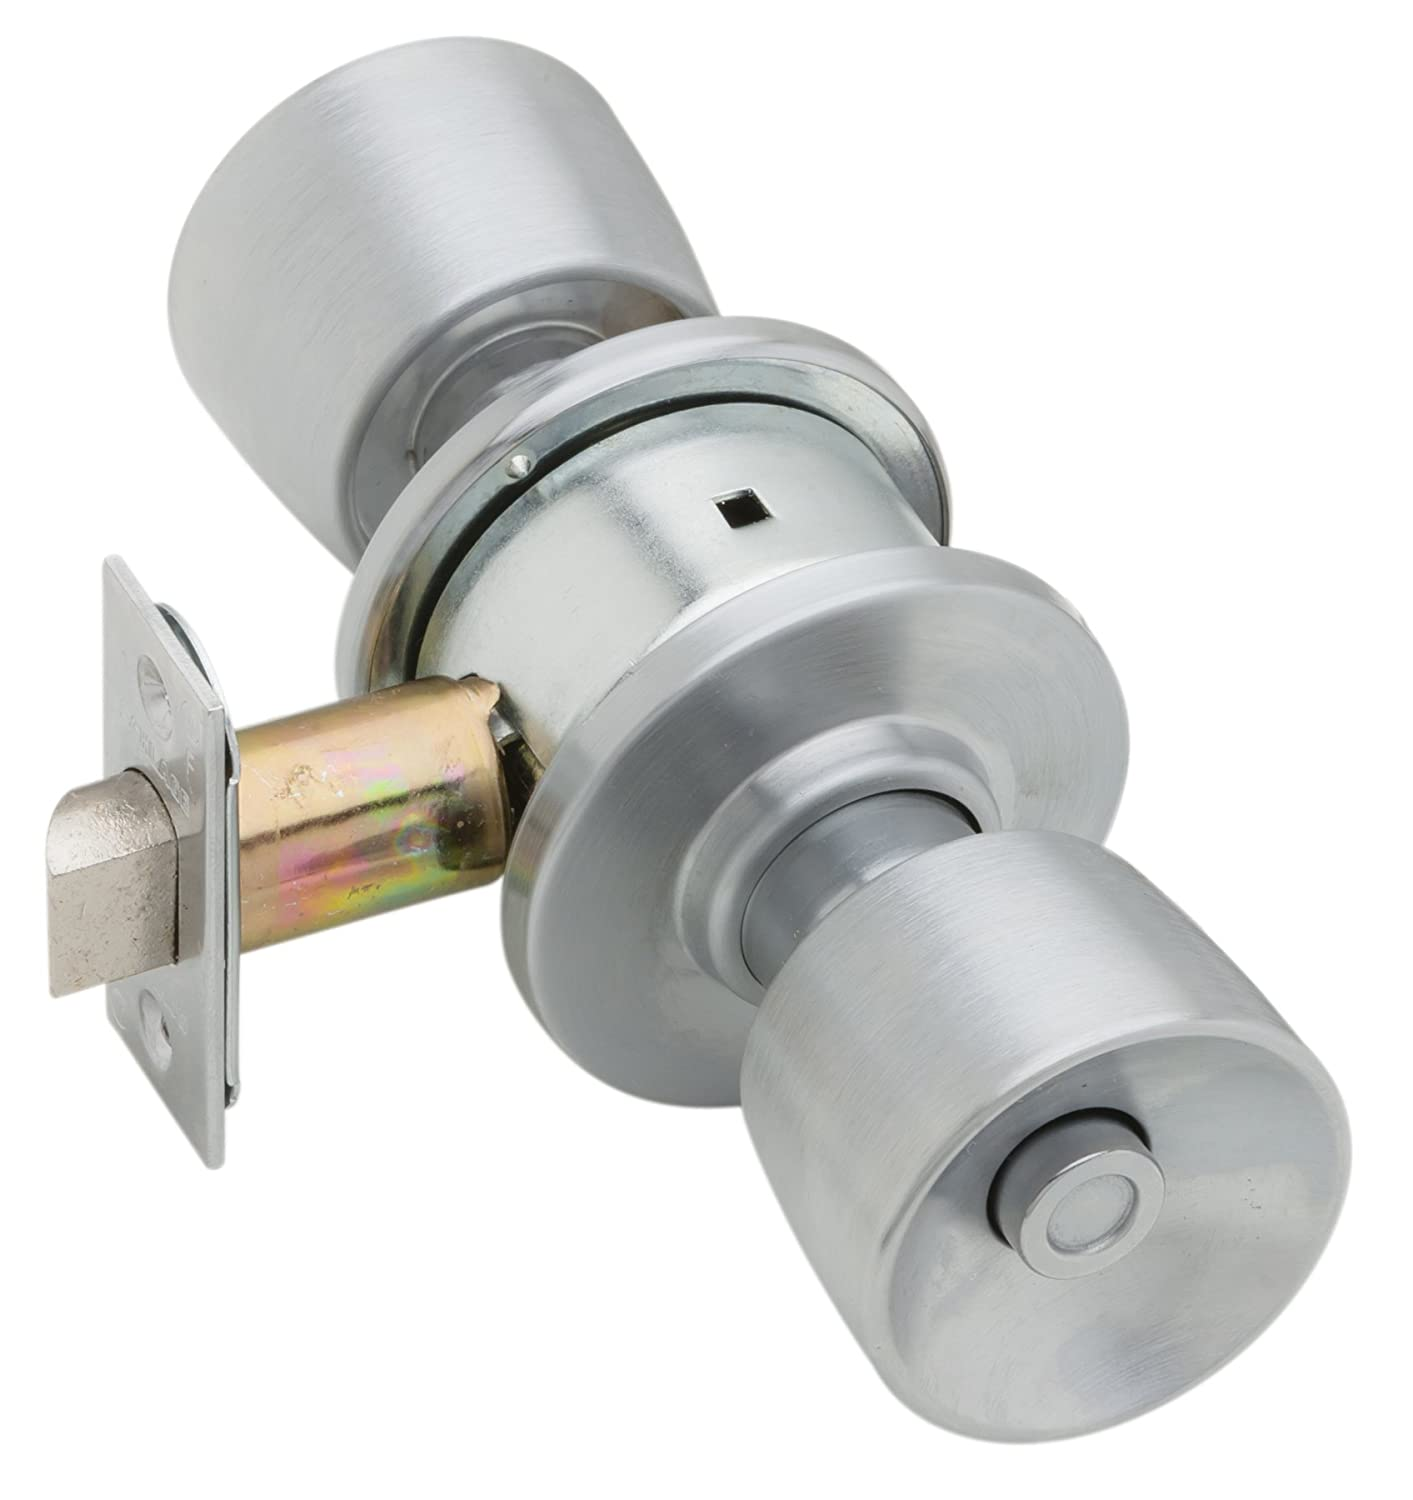 Schlage A40S TUL 626 Series A Grade 2 Cylindrical Lock, Privacy Function, Keyless, Tulip Design, Satin Chrome Finish